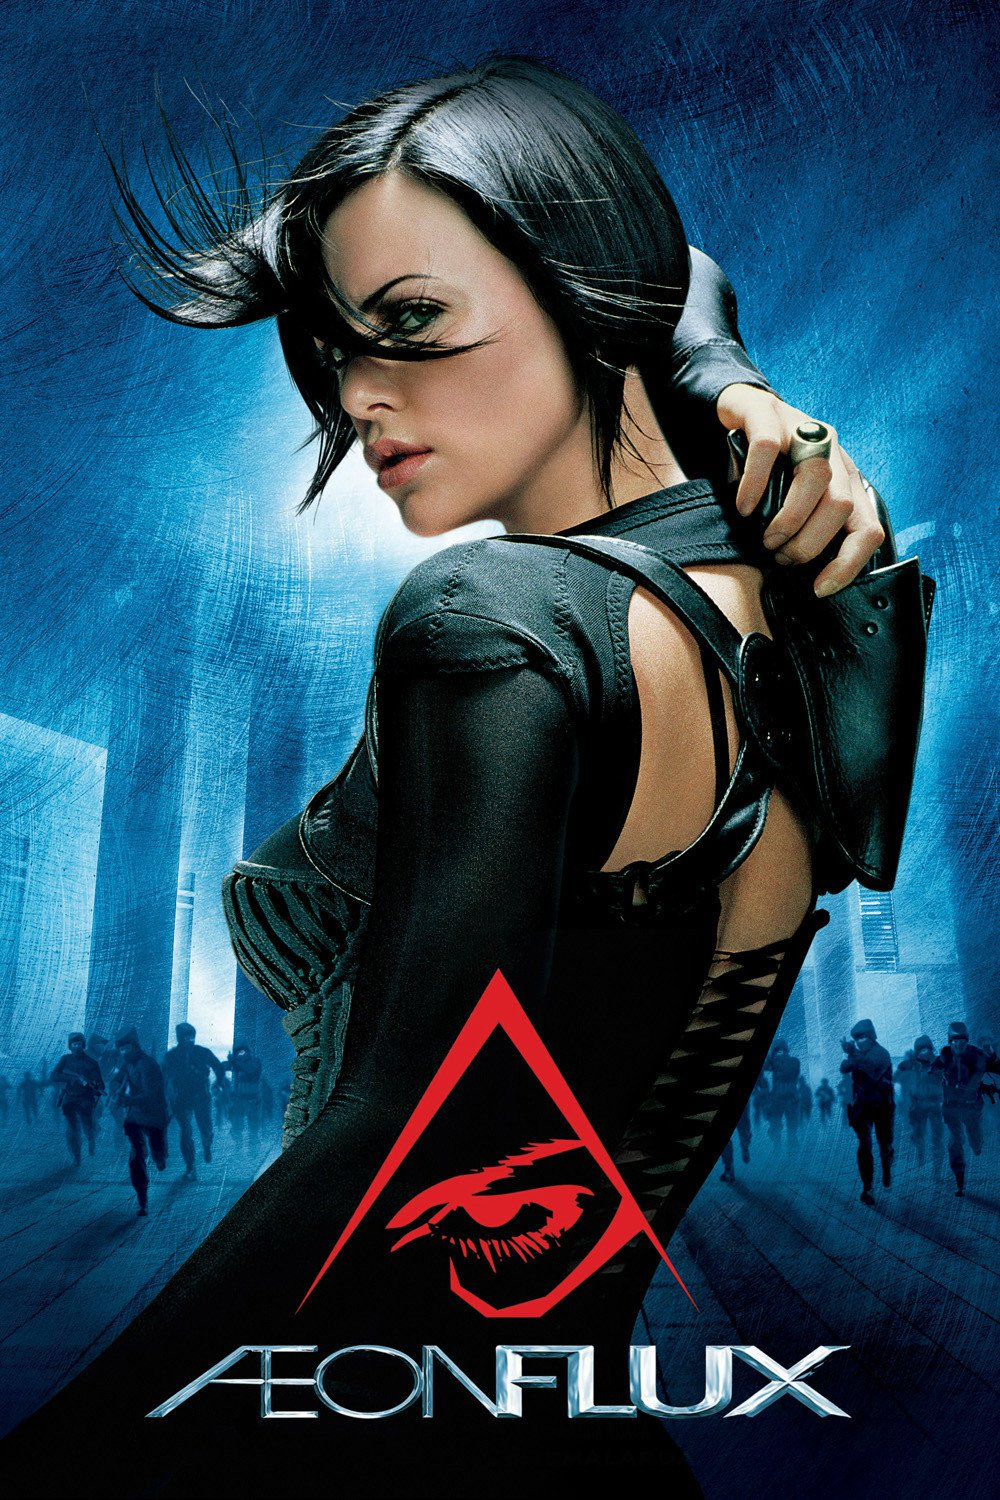 Aeon Flux – I really liked this movie